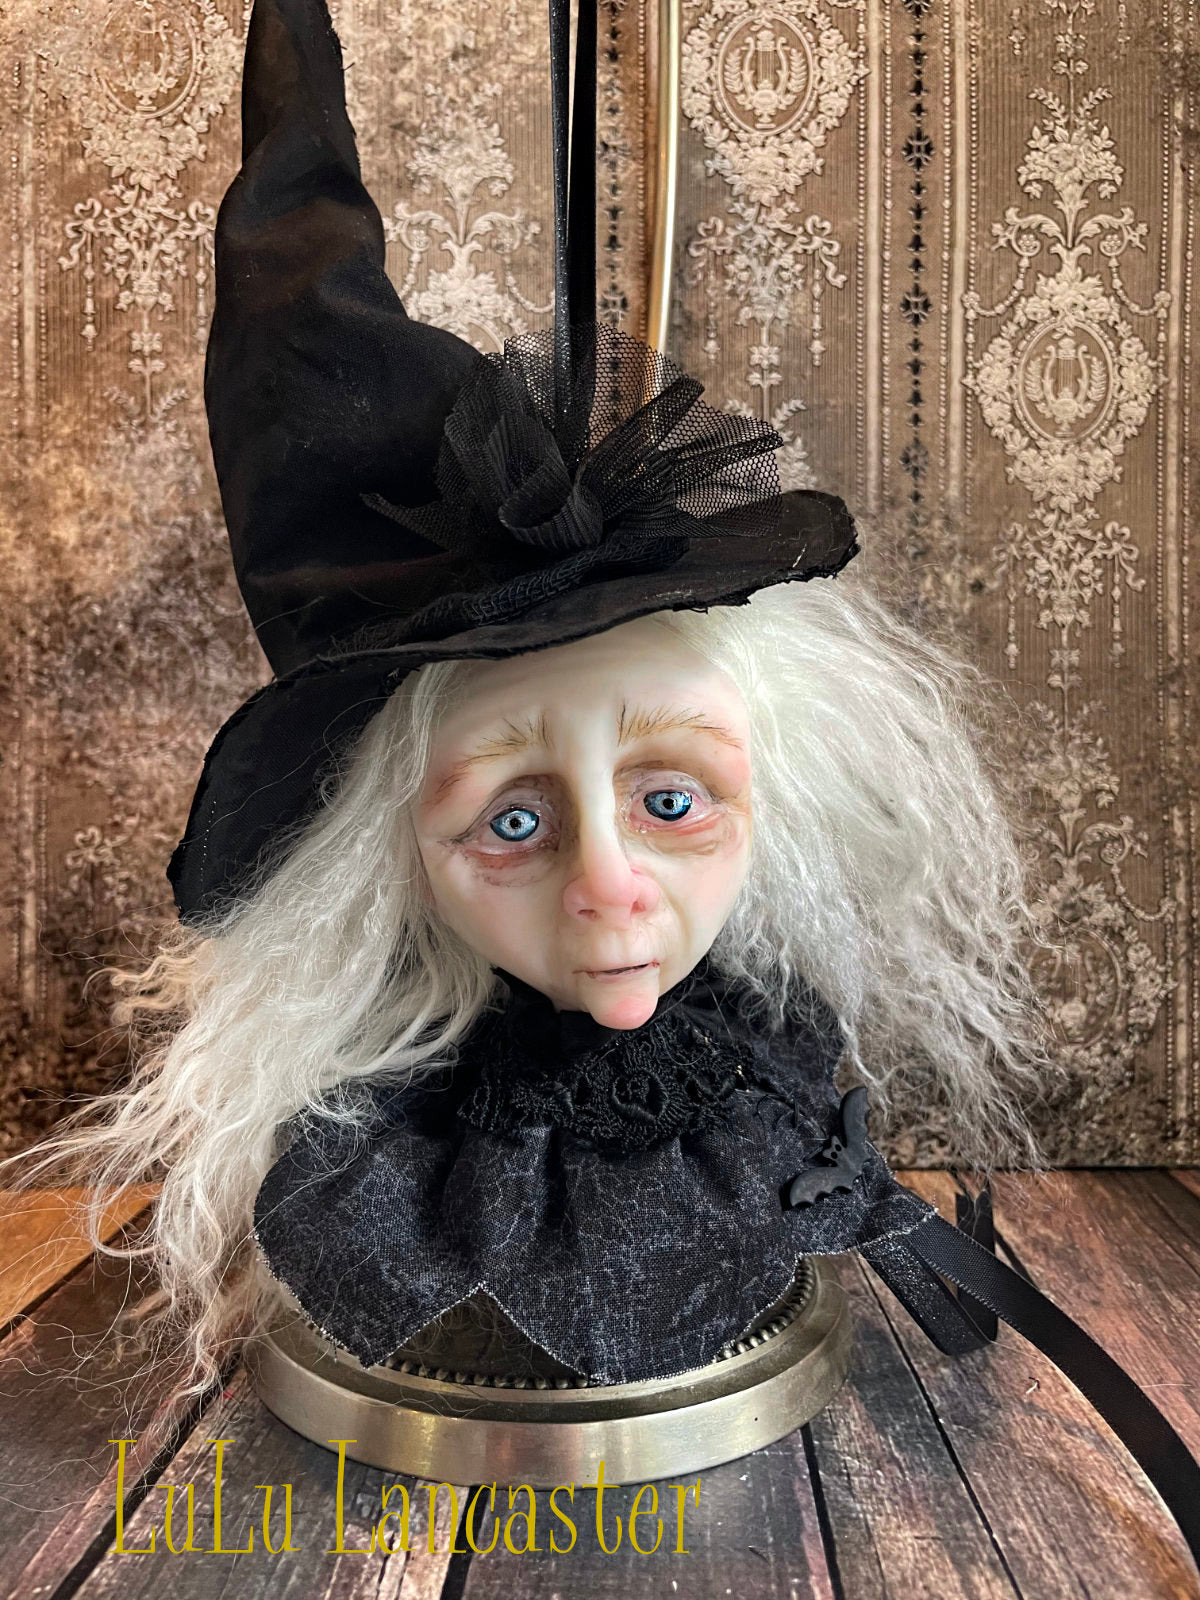 Glenice the Wicked Witch Head Ornament Original LuLu Lancaster Art Doll